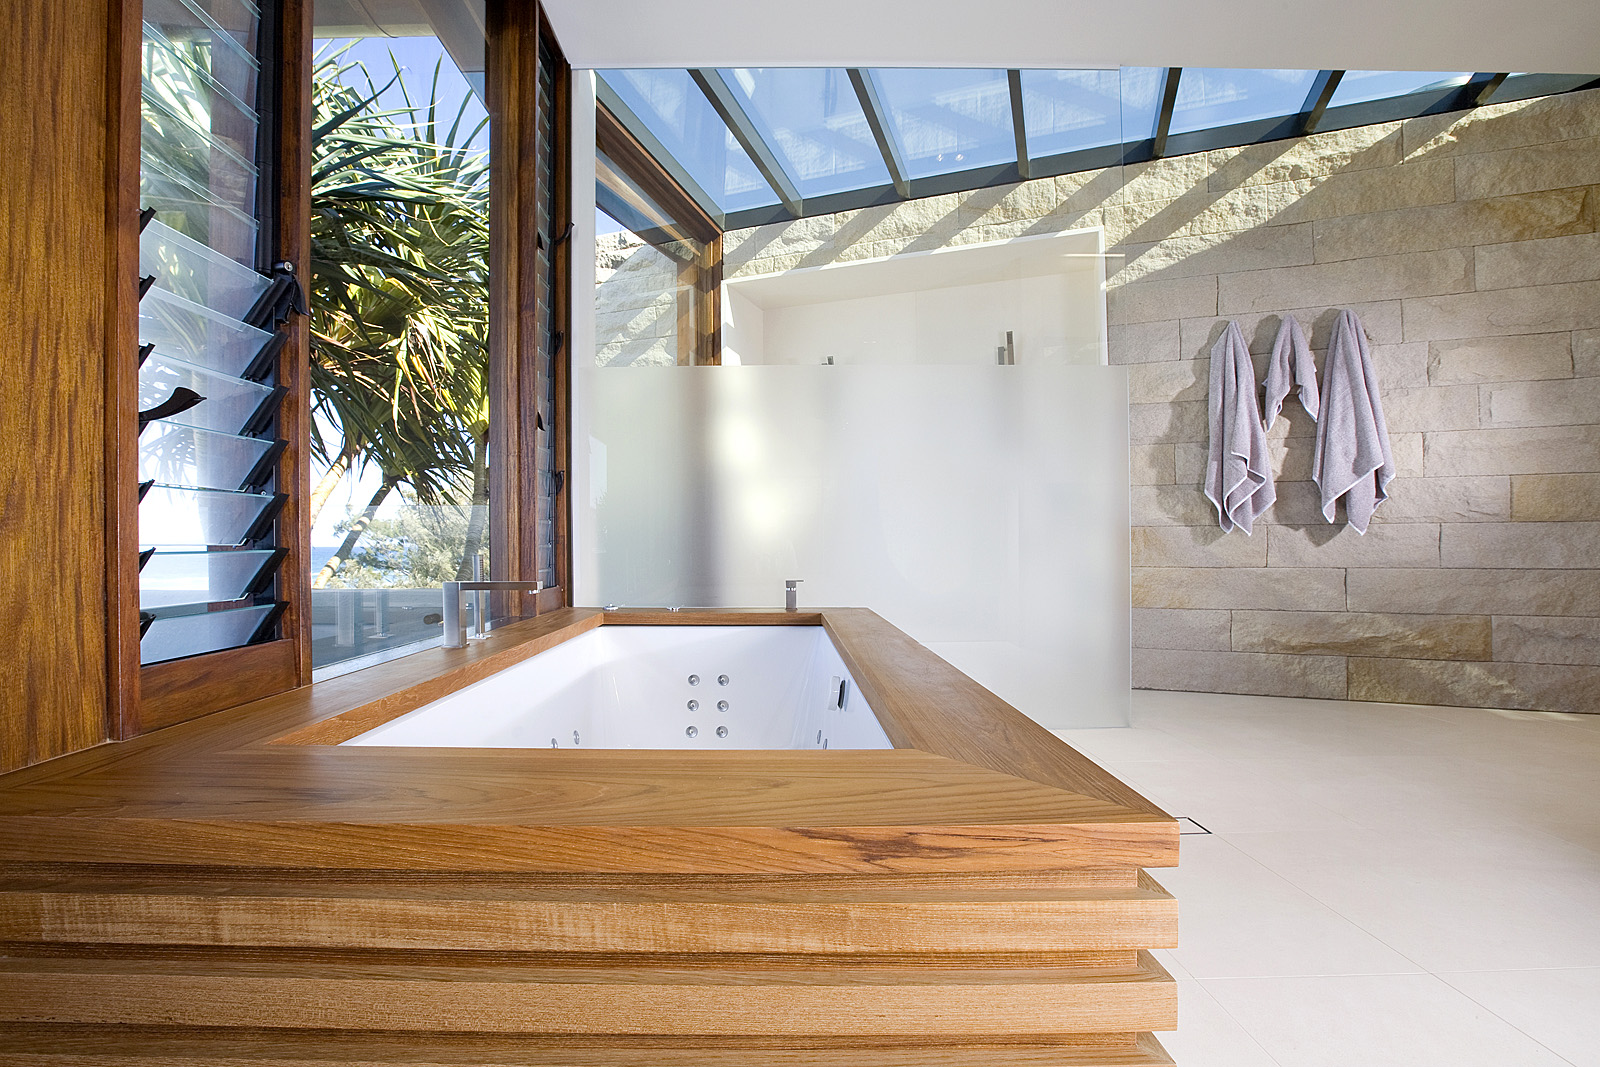 ALBATROSS BATHROOM FEATURING OUR SPLIT FACED SANDSTONE